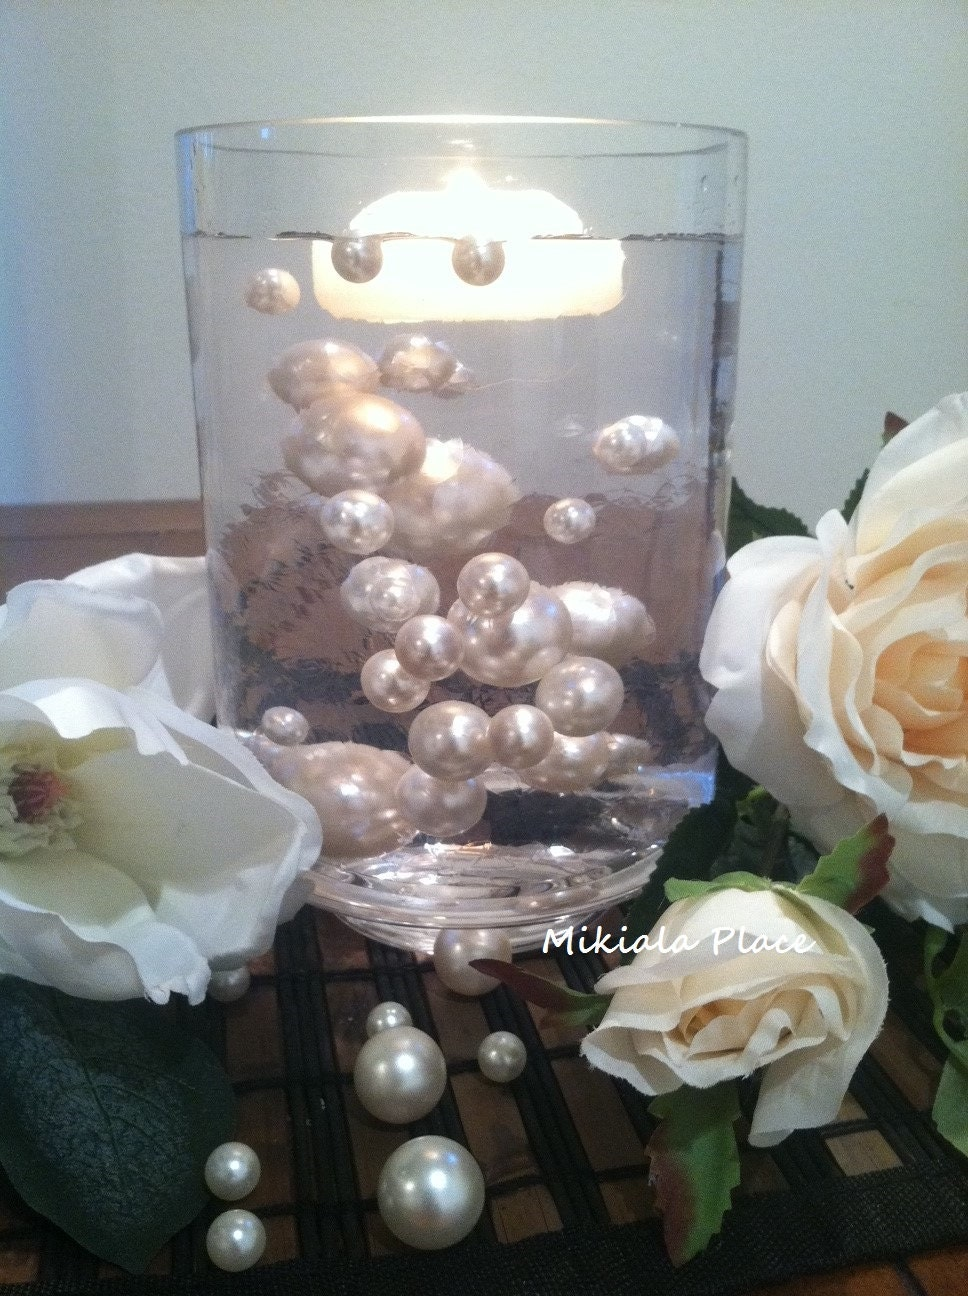 Ivory White Jumbo Floating Pearls For Vase Fillers Birthday